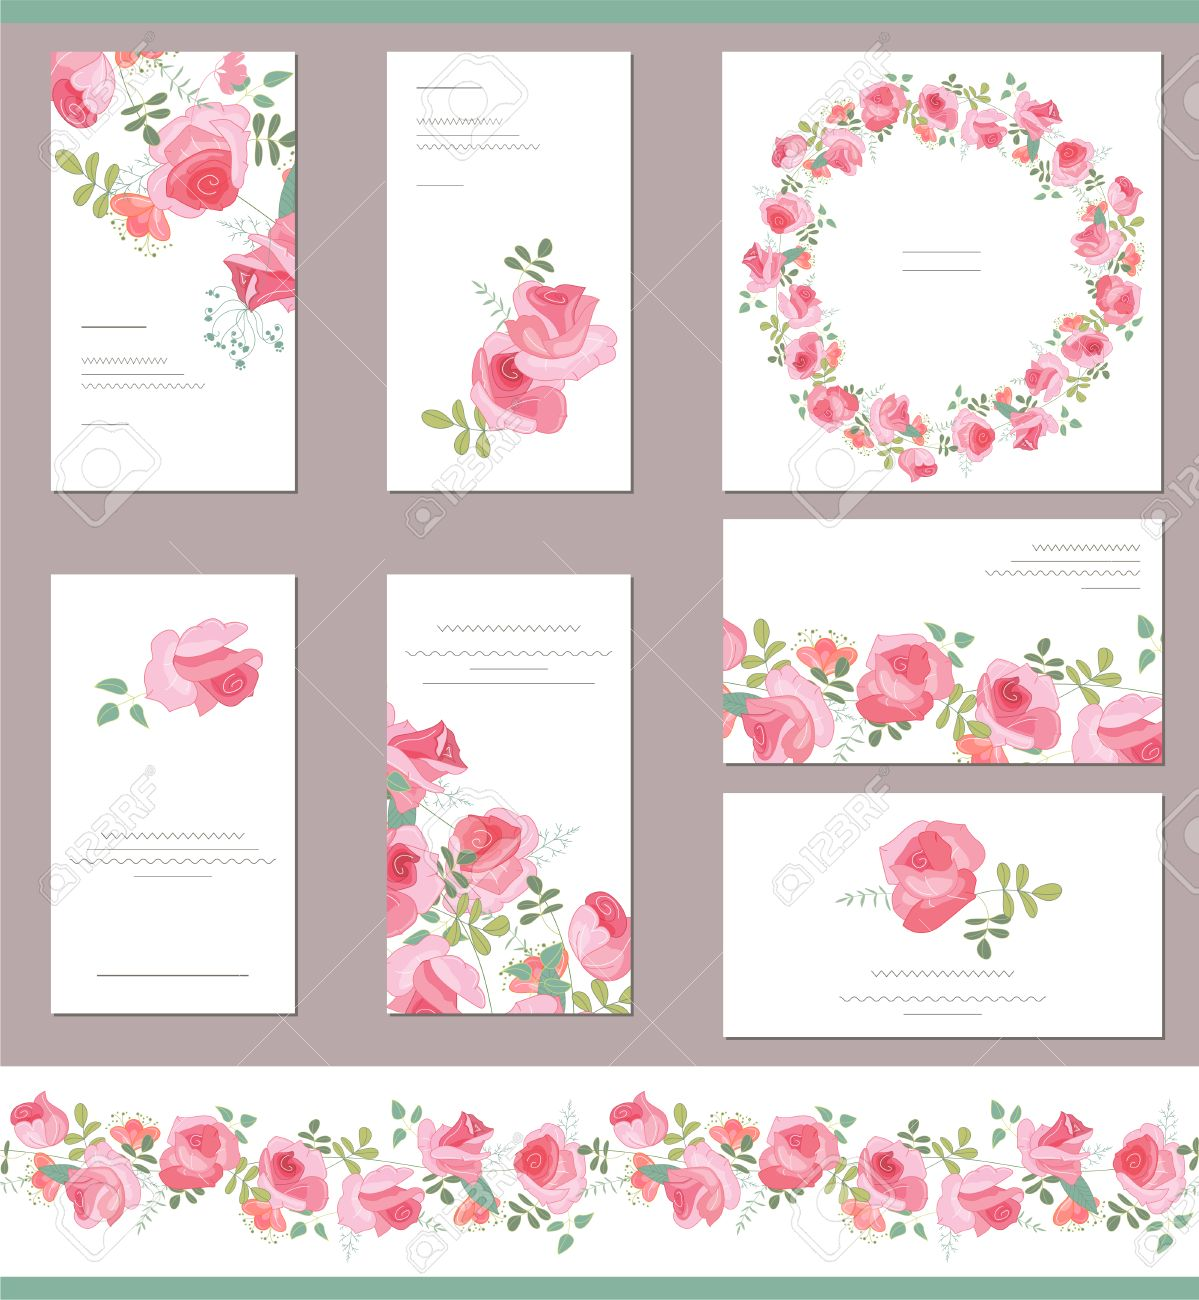 floral templates with cute bunches of red roses for romantic